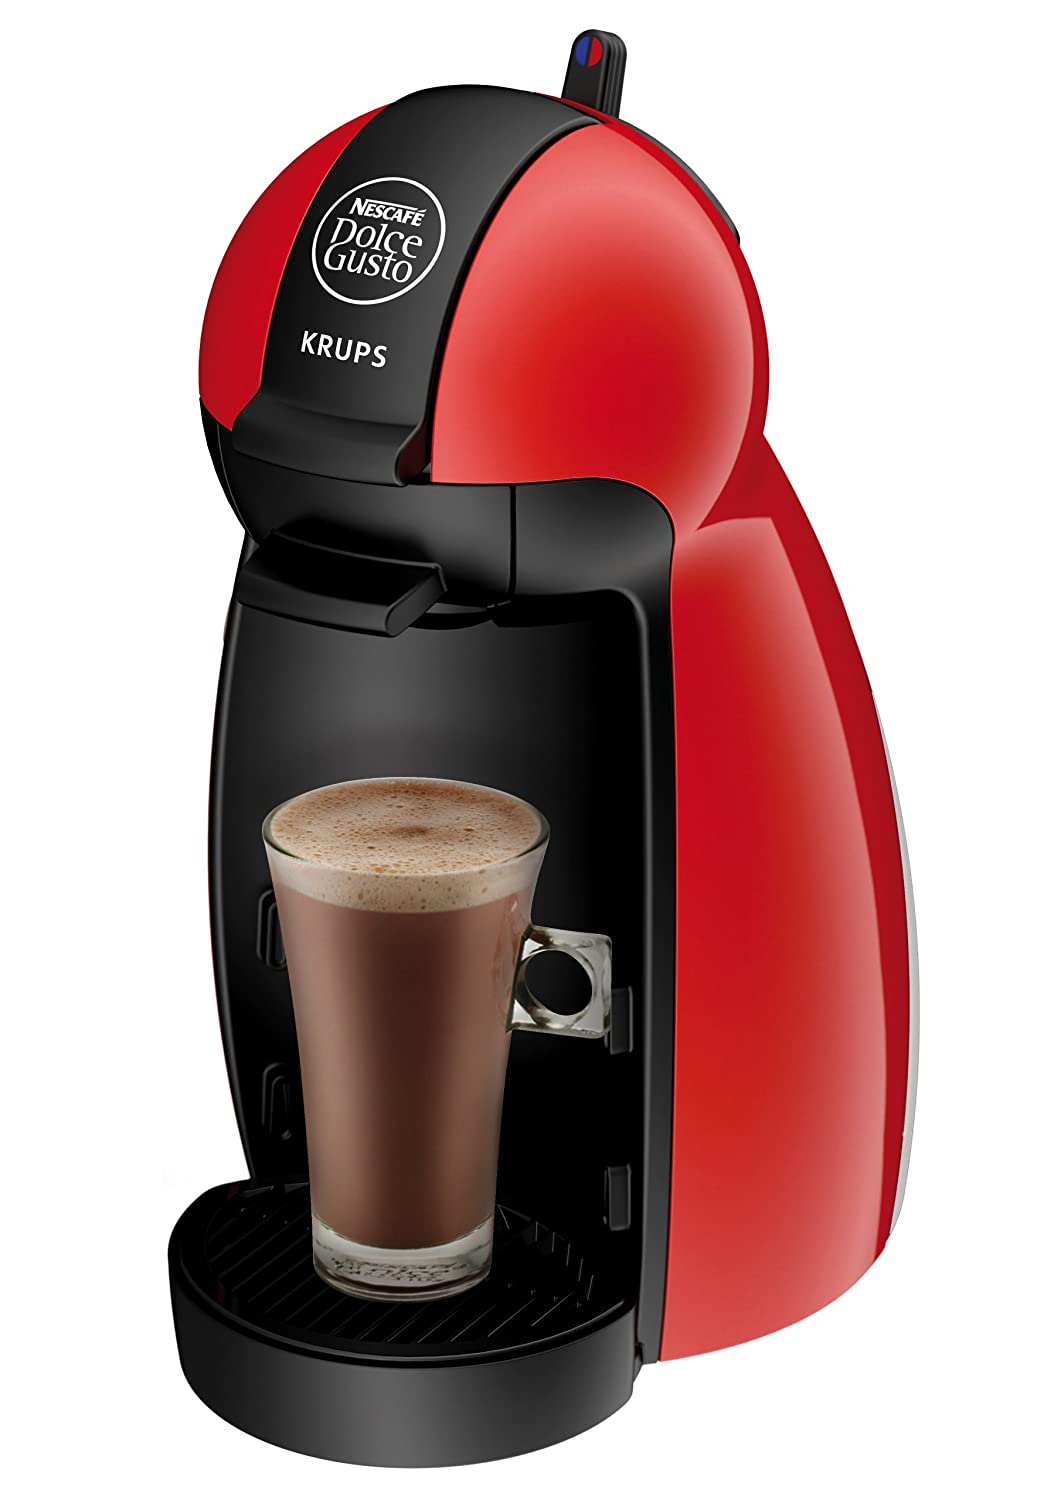 coffee machine krups nescafe dolce gusto piccolo espresso coffee machine kp1006 ebay. Black Bedroom Furniture Sets. Home Design Ideas